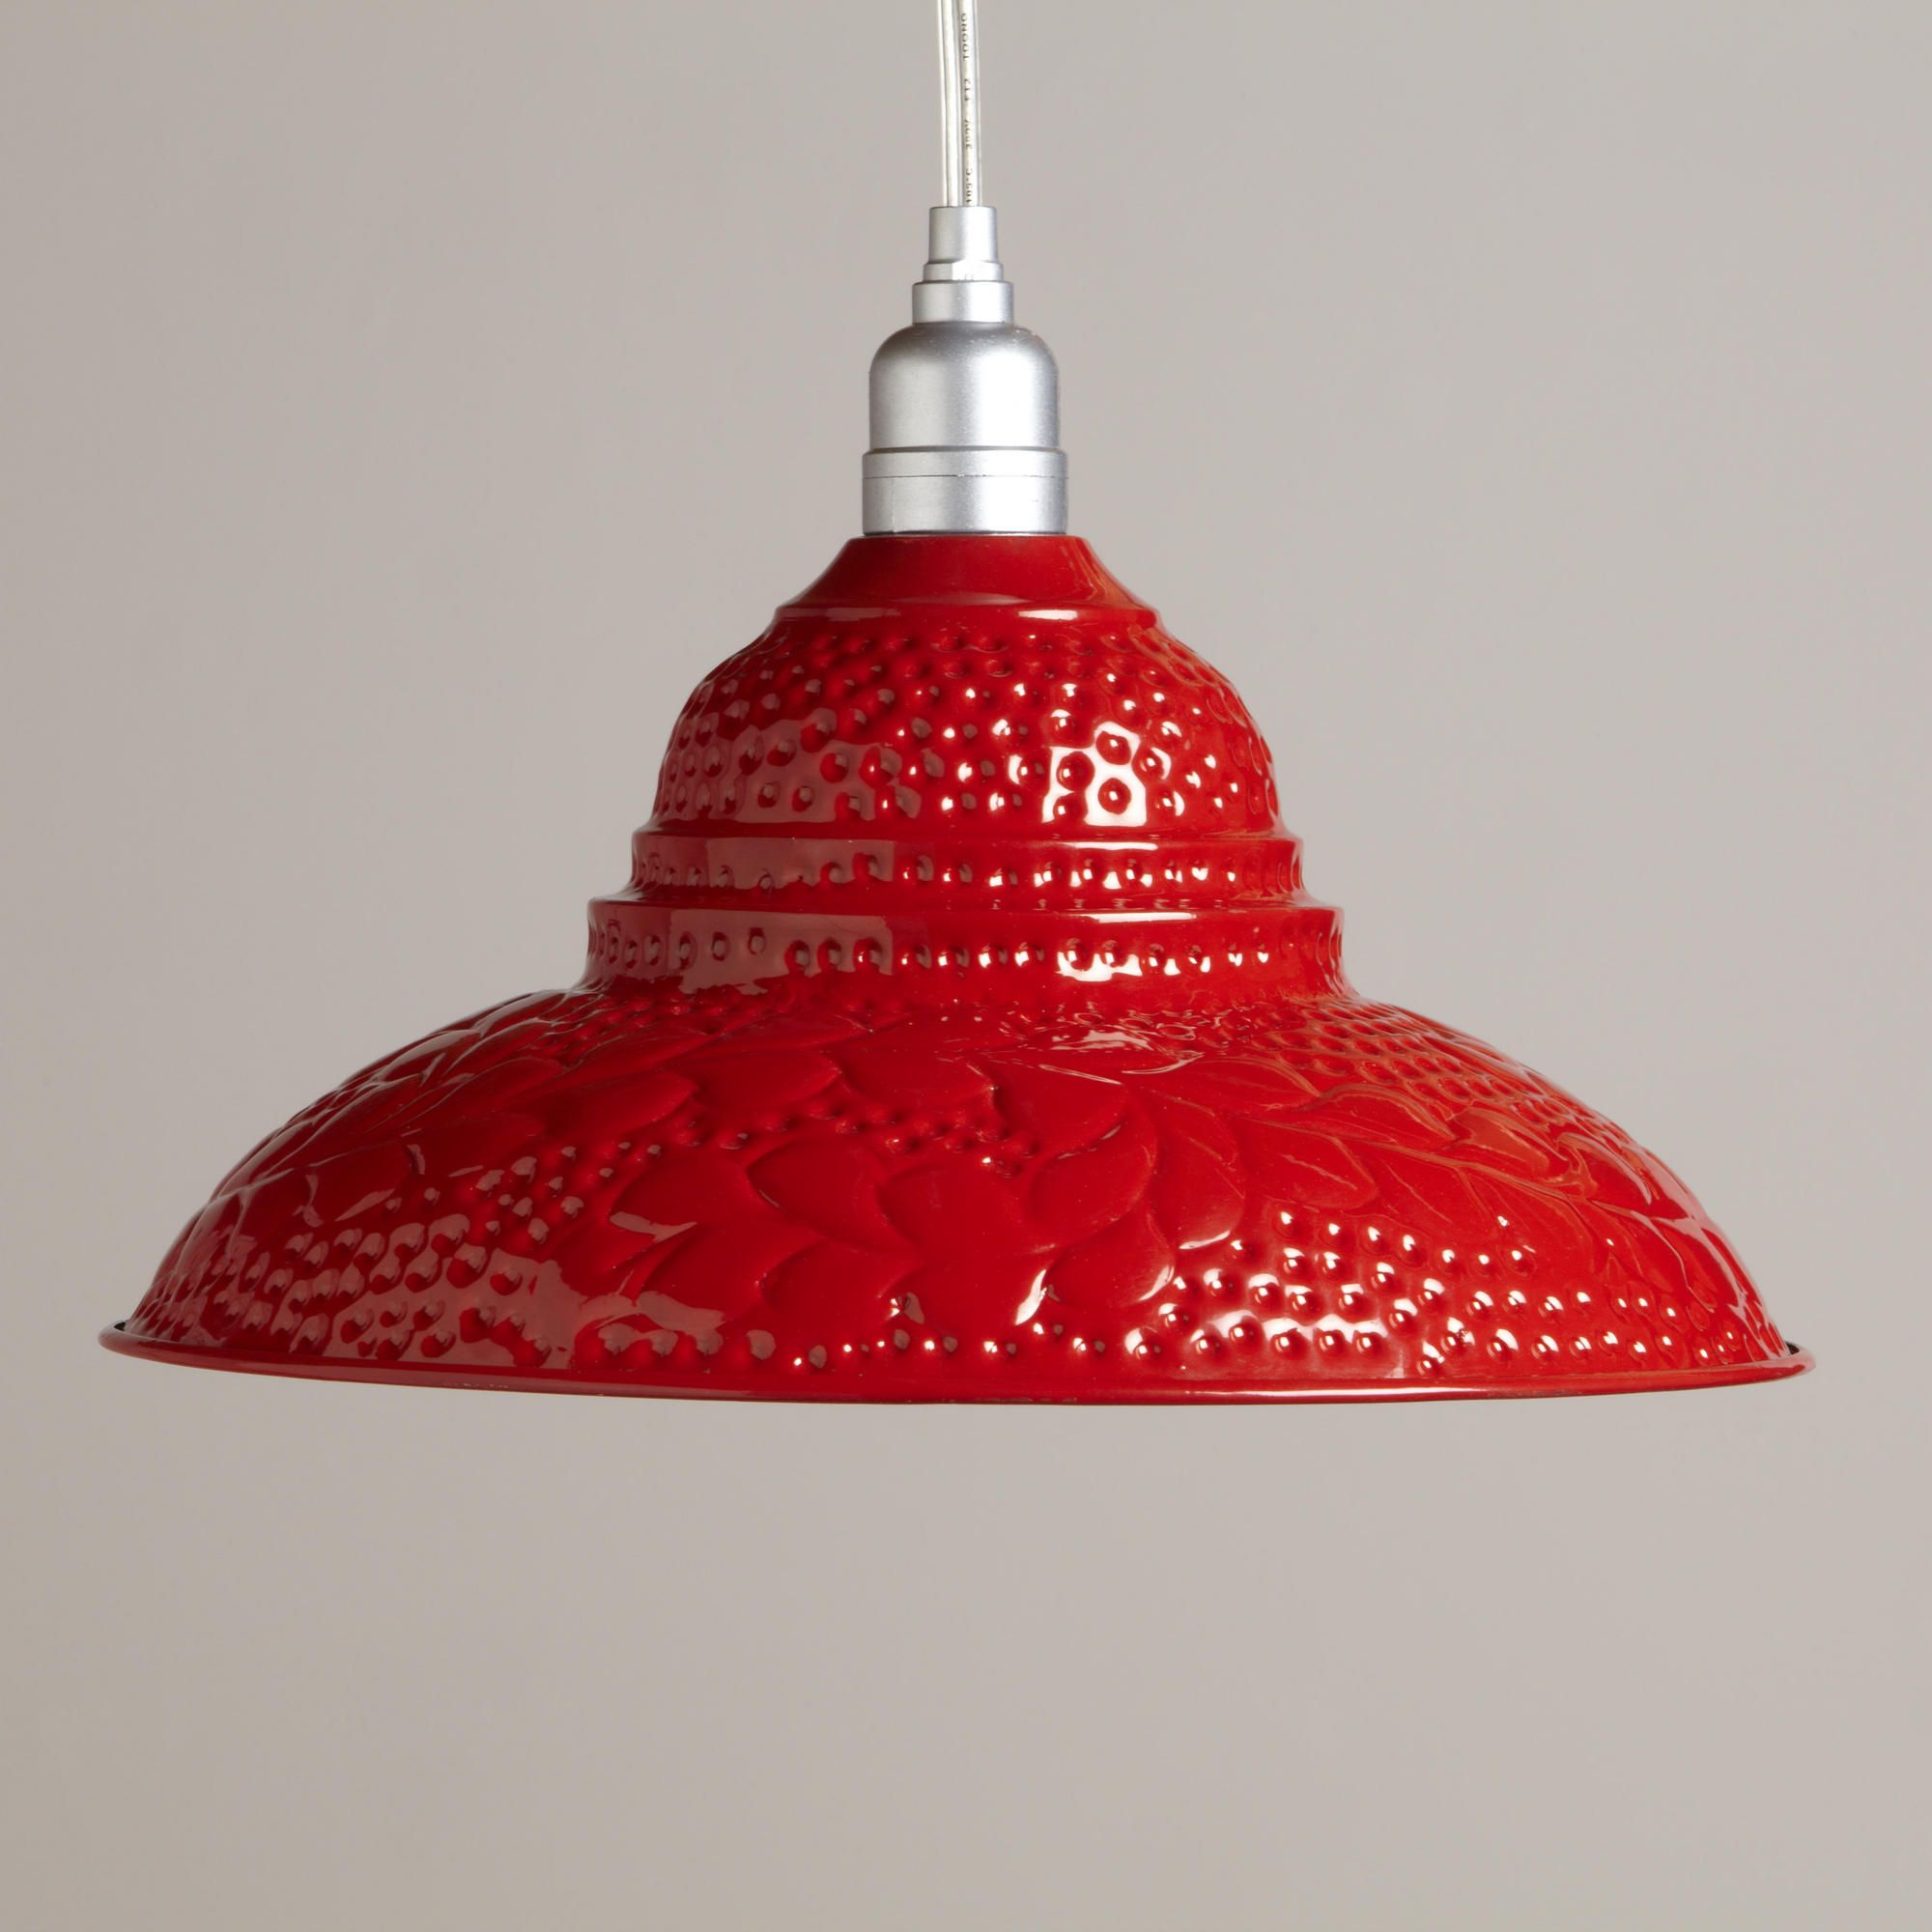 Red Pendant Lights For Kitchen Red Punched Metal Pendant World Market For Over Sink Could